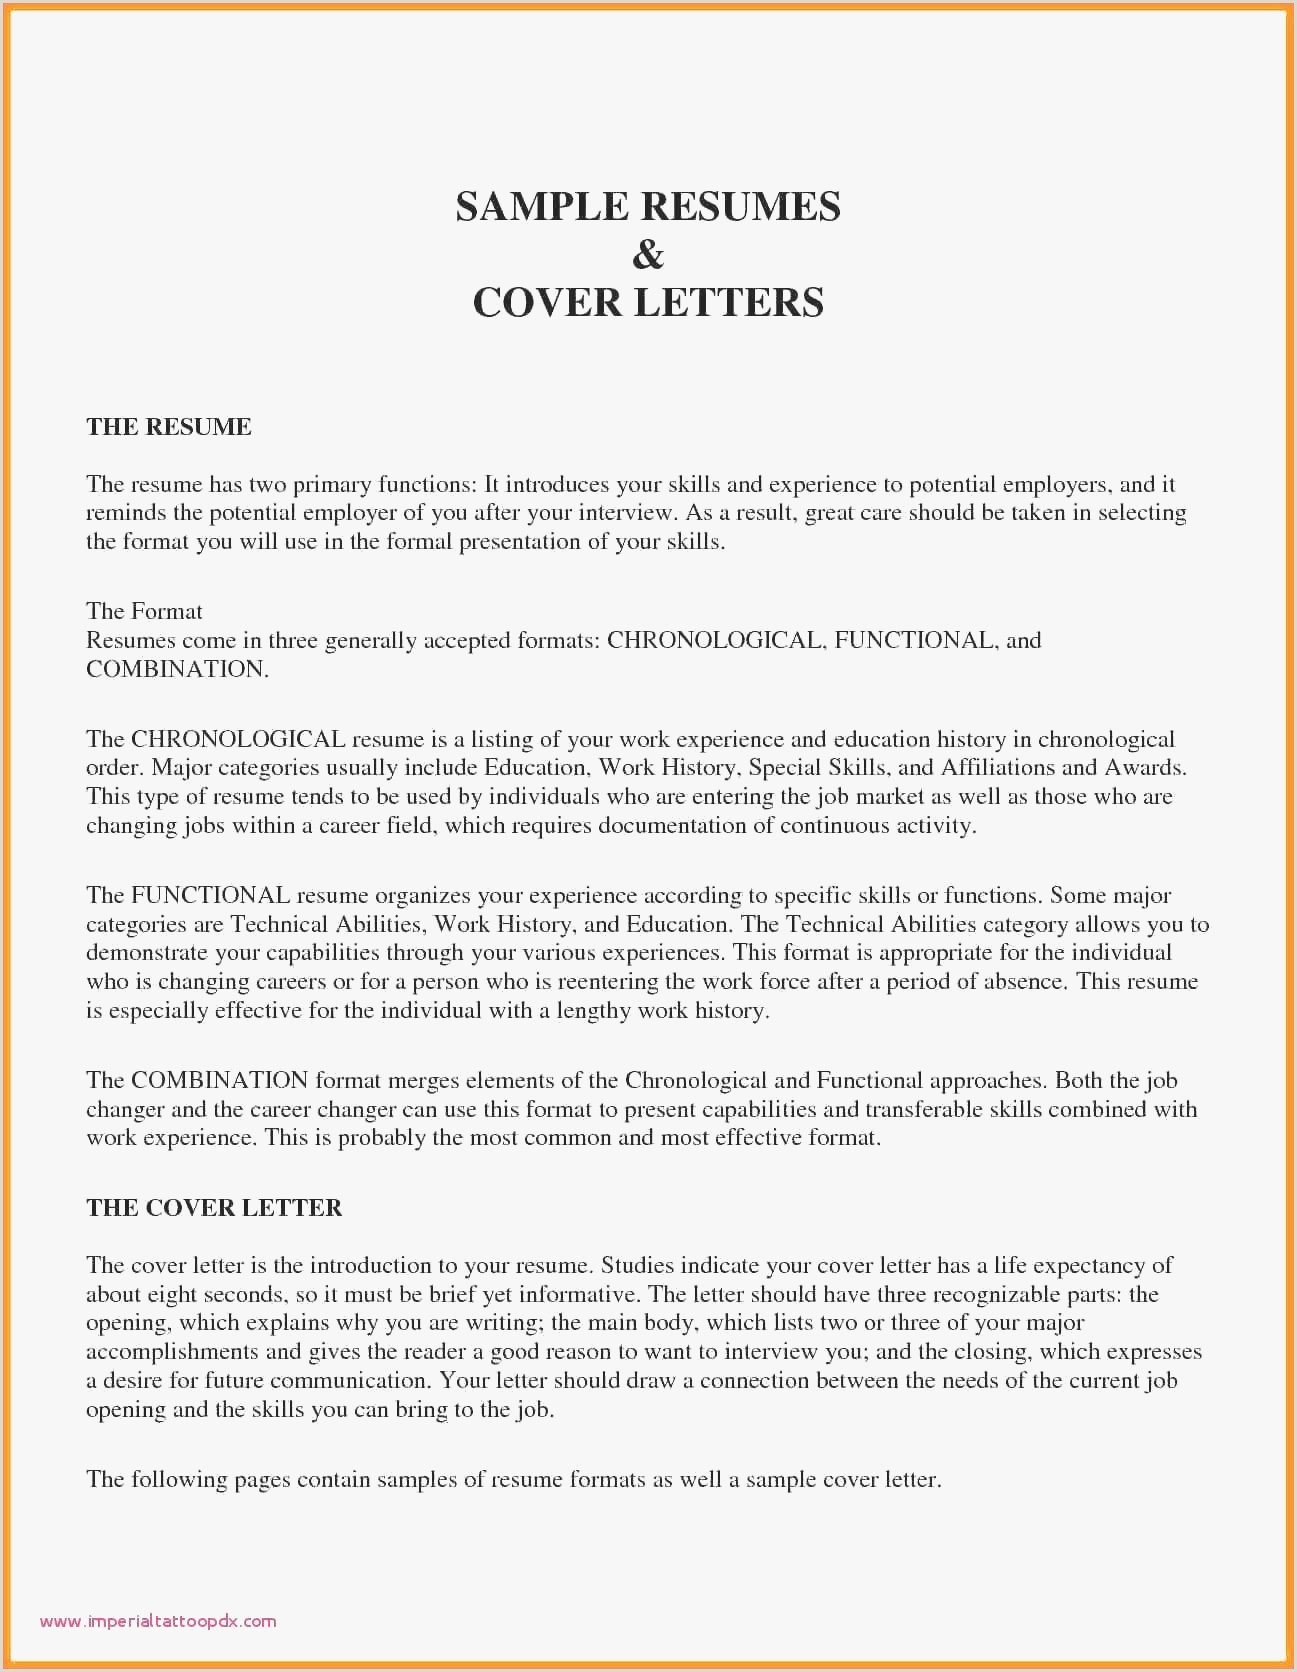 Type A Cover Letter Examples Cv Type How to Email A Cv and